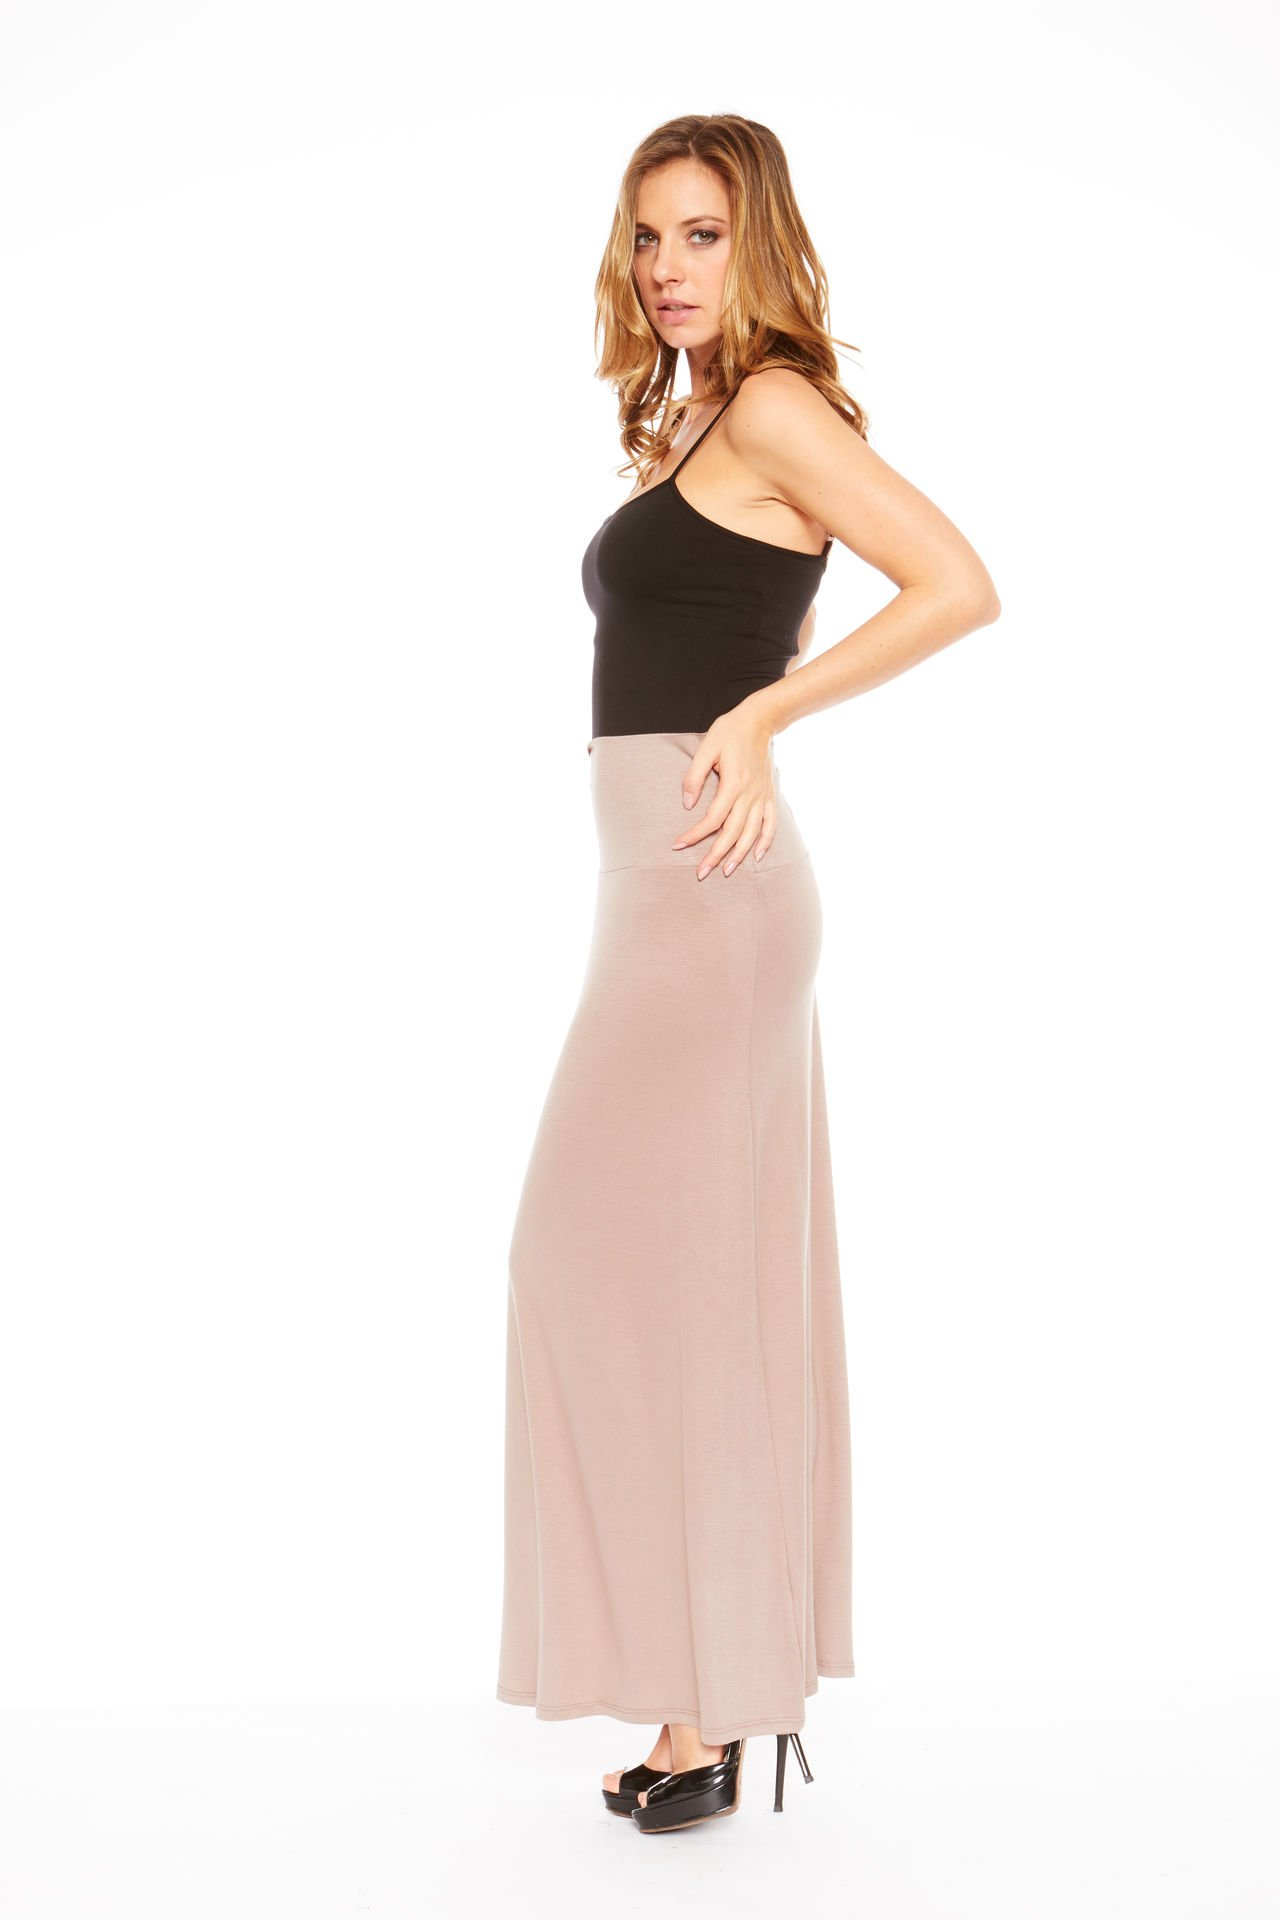 Red Hanger Women's Stylish Solid Long Maxi Skirt - Made in USA, Taupe-1X by Red Hanger (Image #2)